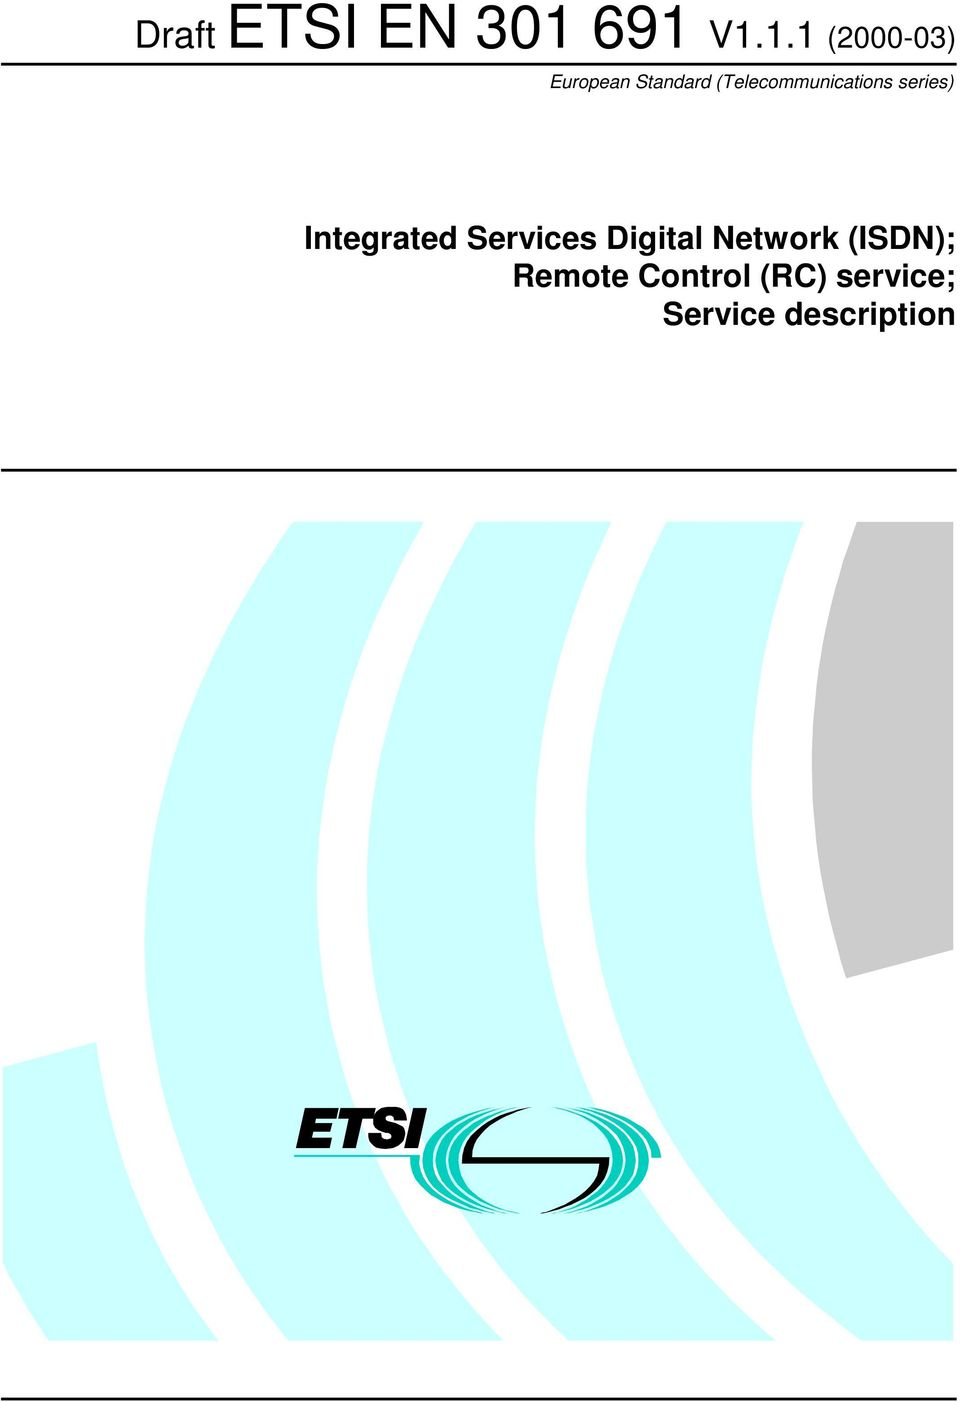 (Telecommunications series) Integrated